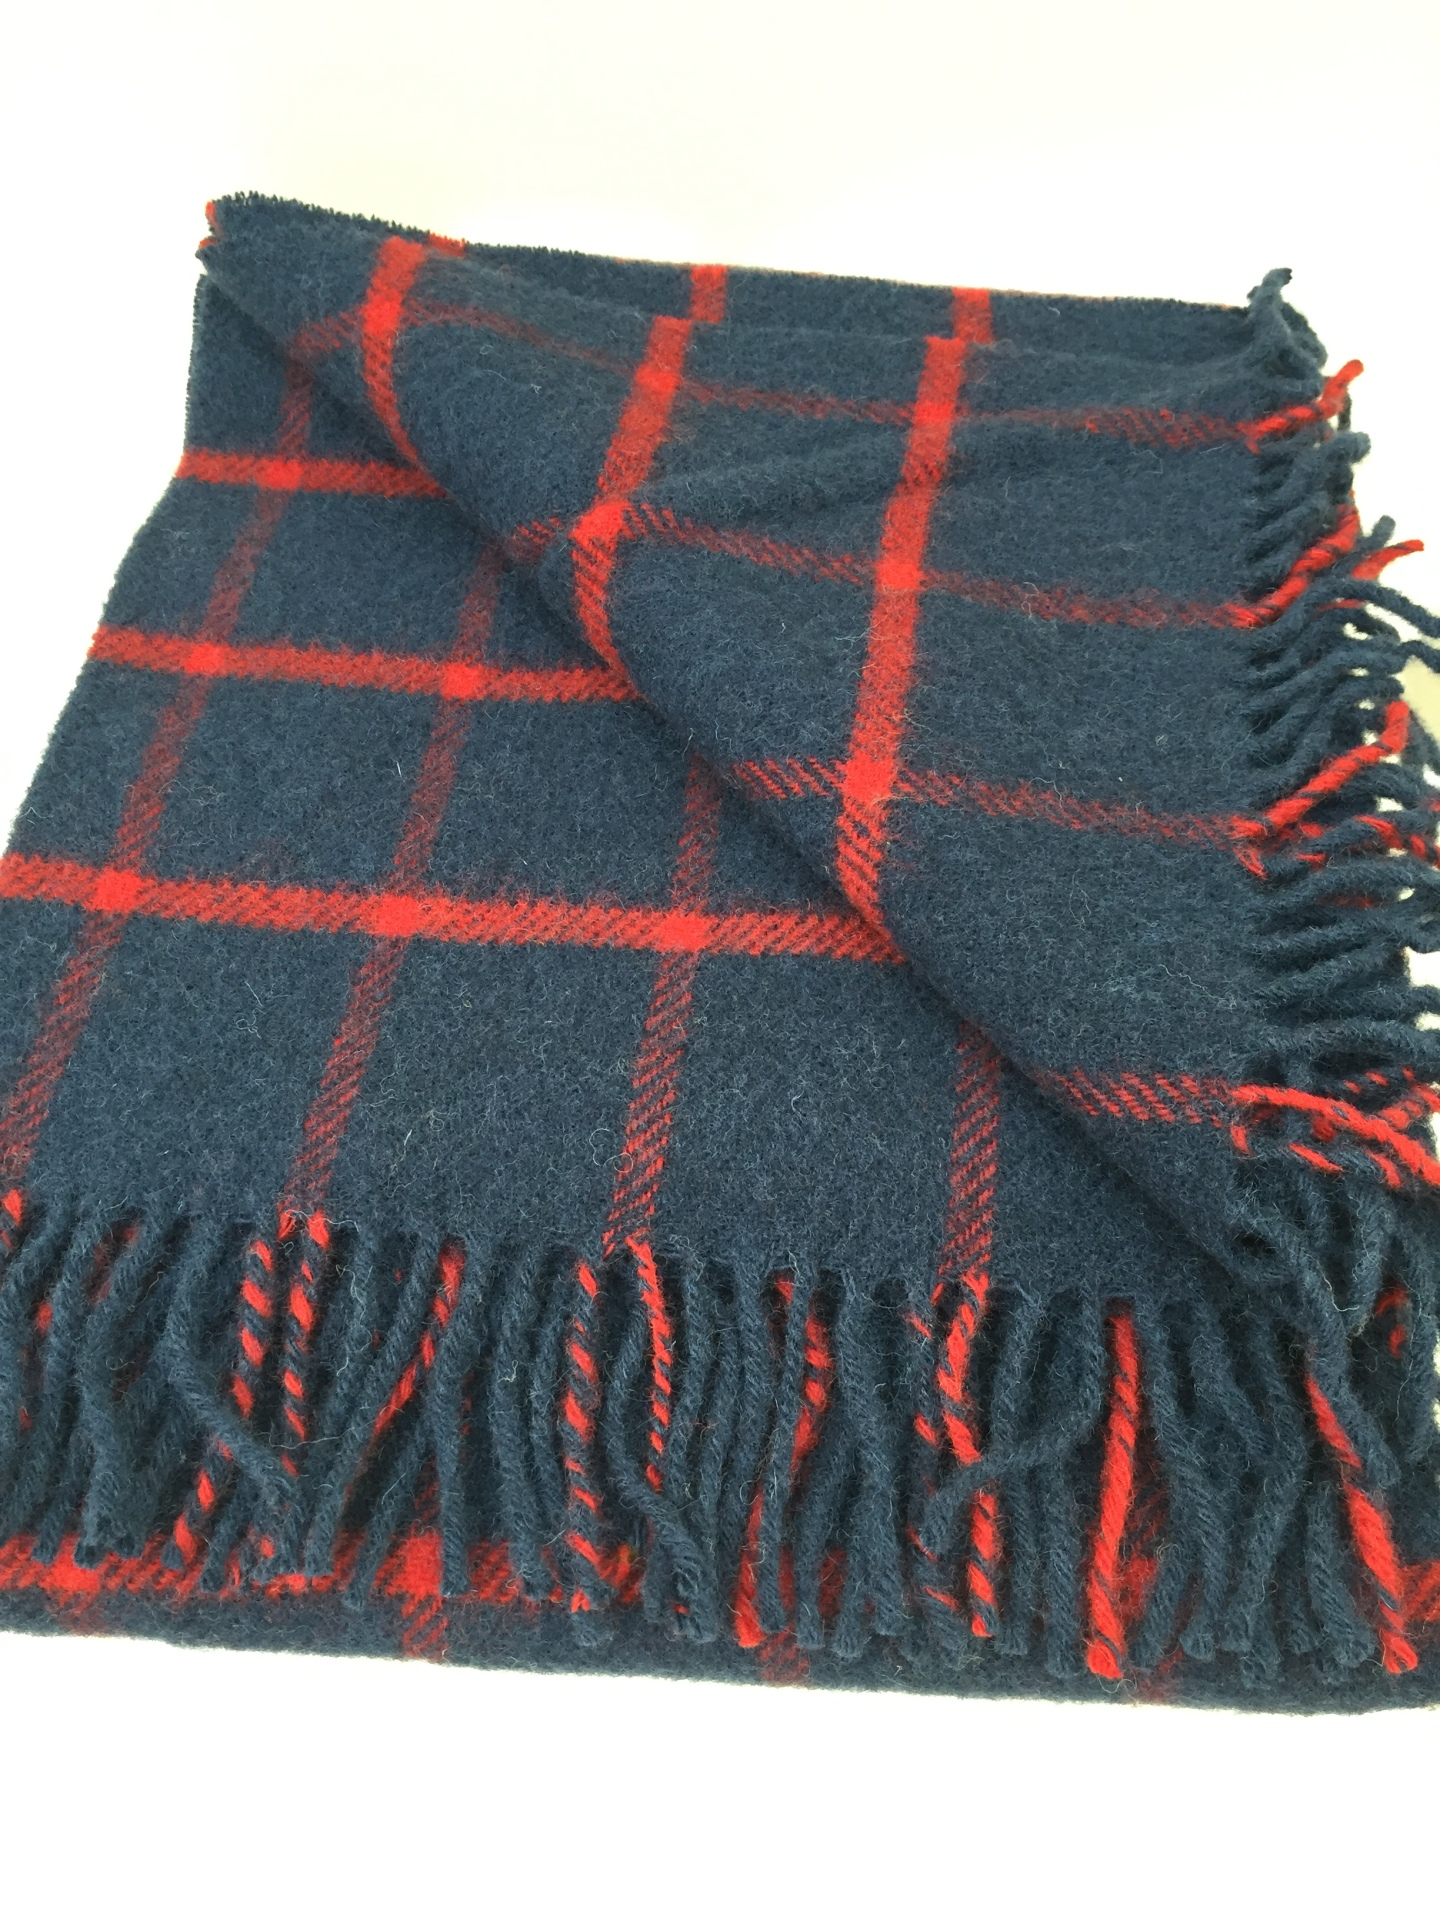 Chequered Check Navy red Knee Rug